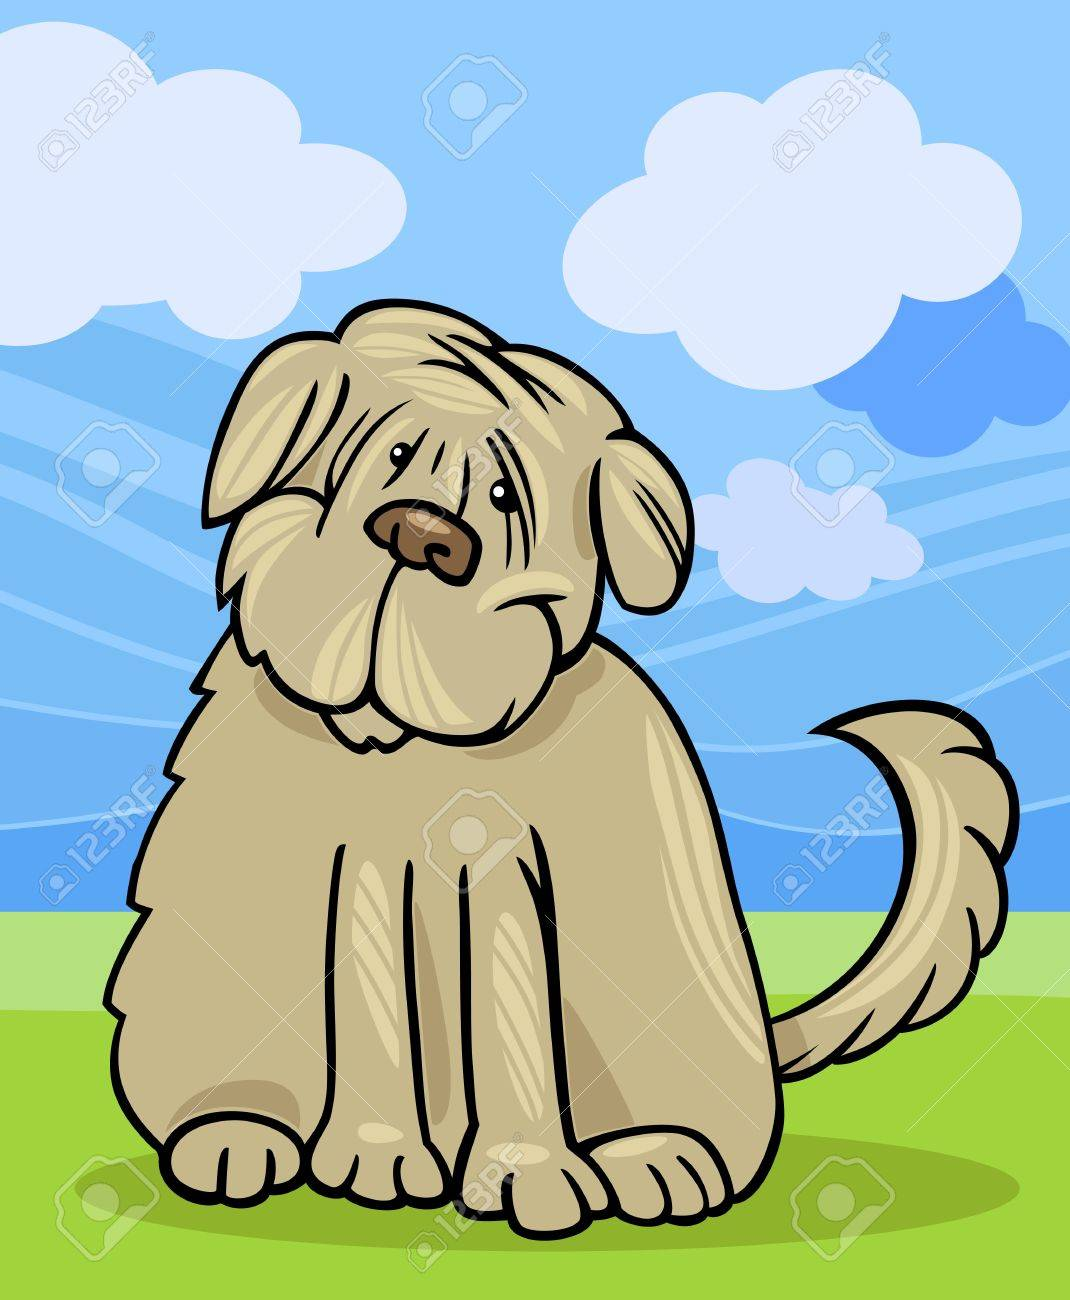 Cartoon Illustration of Funny Purebred Tibetan Terrier Dog or Labrador Doodle or Briard against Blue Sky and Green Grass Stock Vector - 16452306